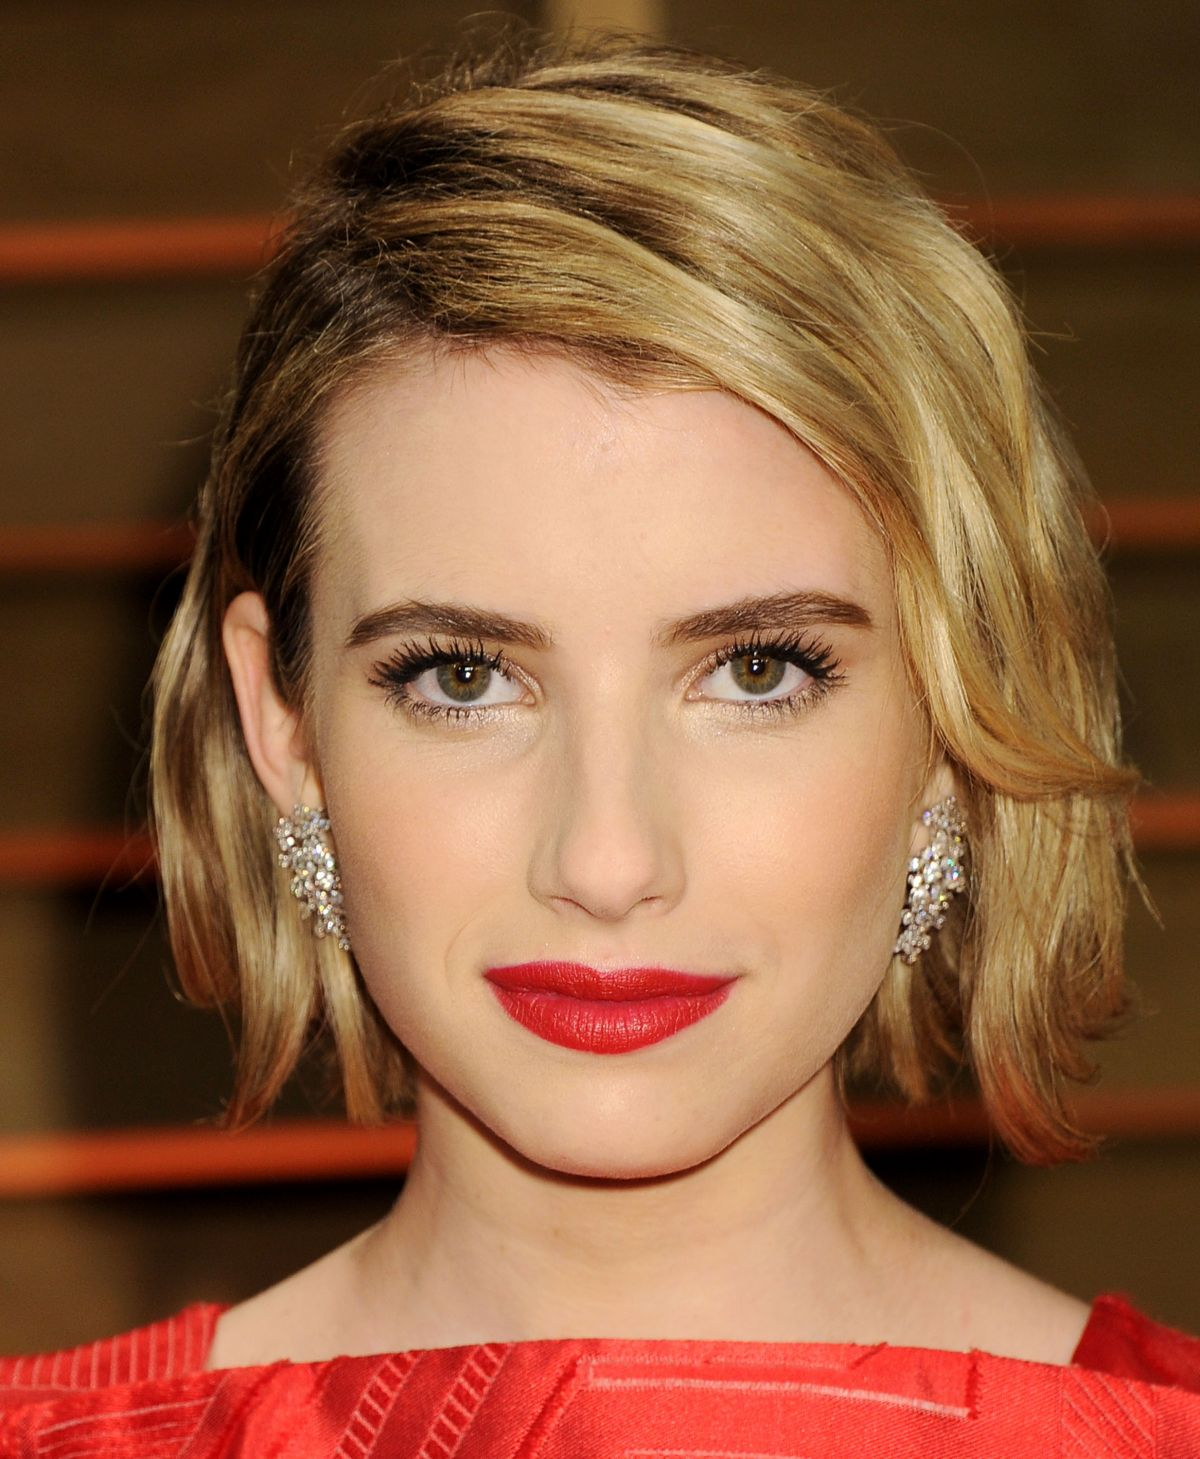 emma-roberts-at-vanity-fair-2014-oscar-party-_1